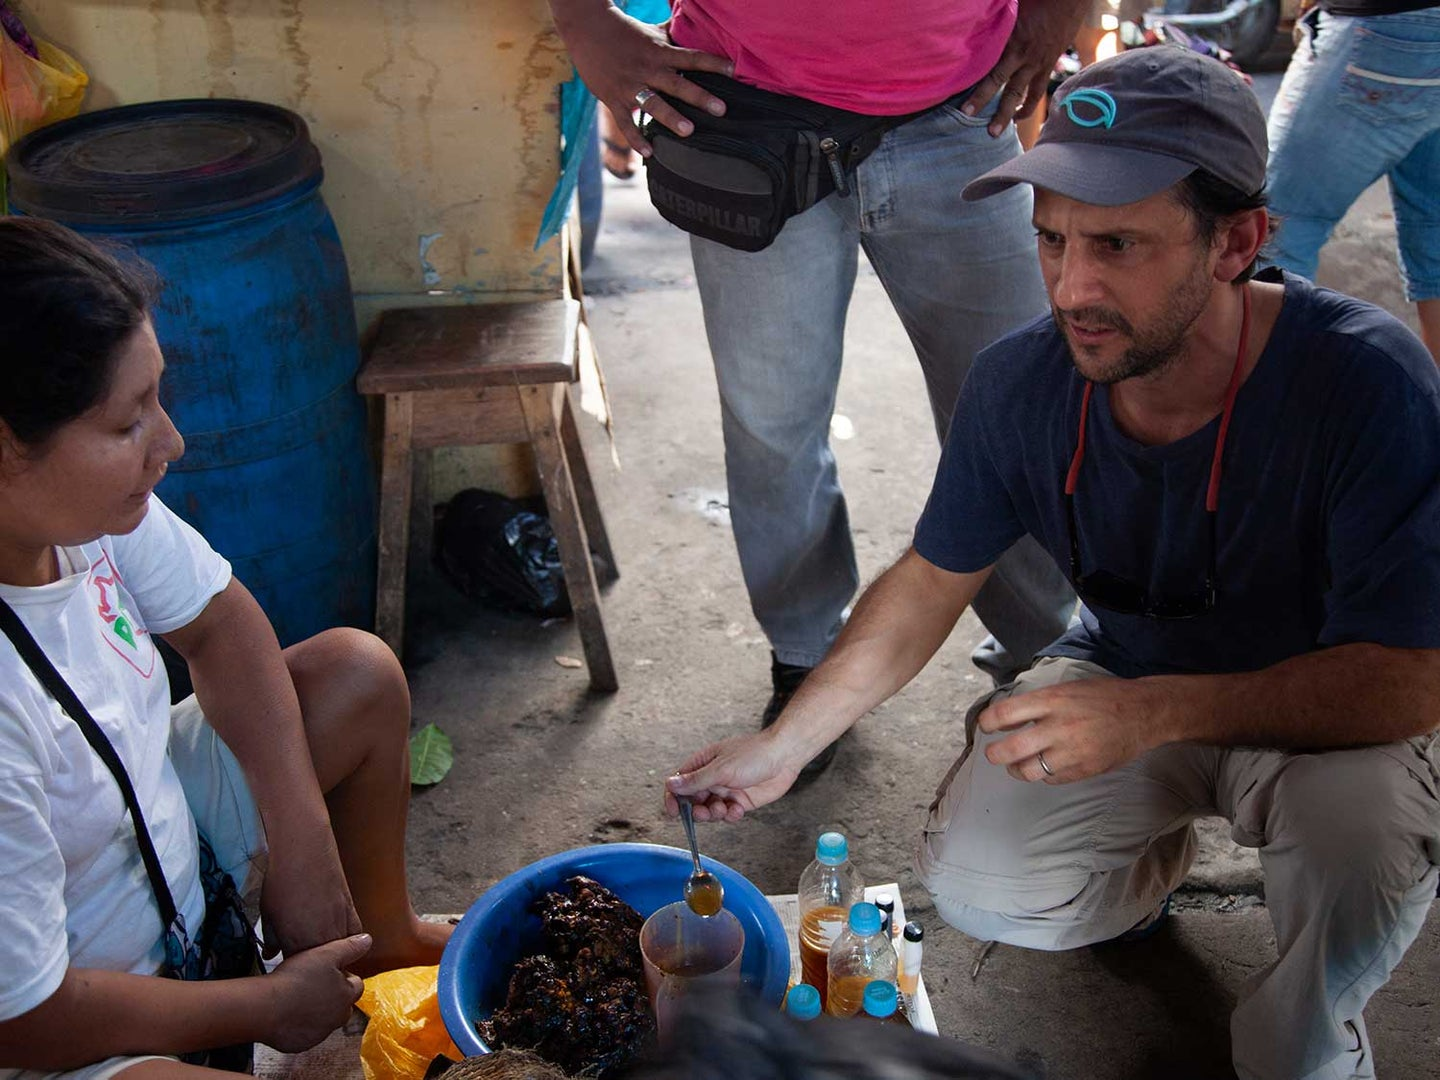 Peruvian chef Pedro Miguel Schiaffino speaks with a vendor at the Mercado de Belén in the Amazonian city of Iquitos.